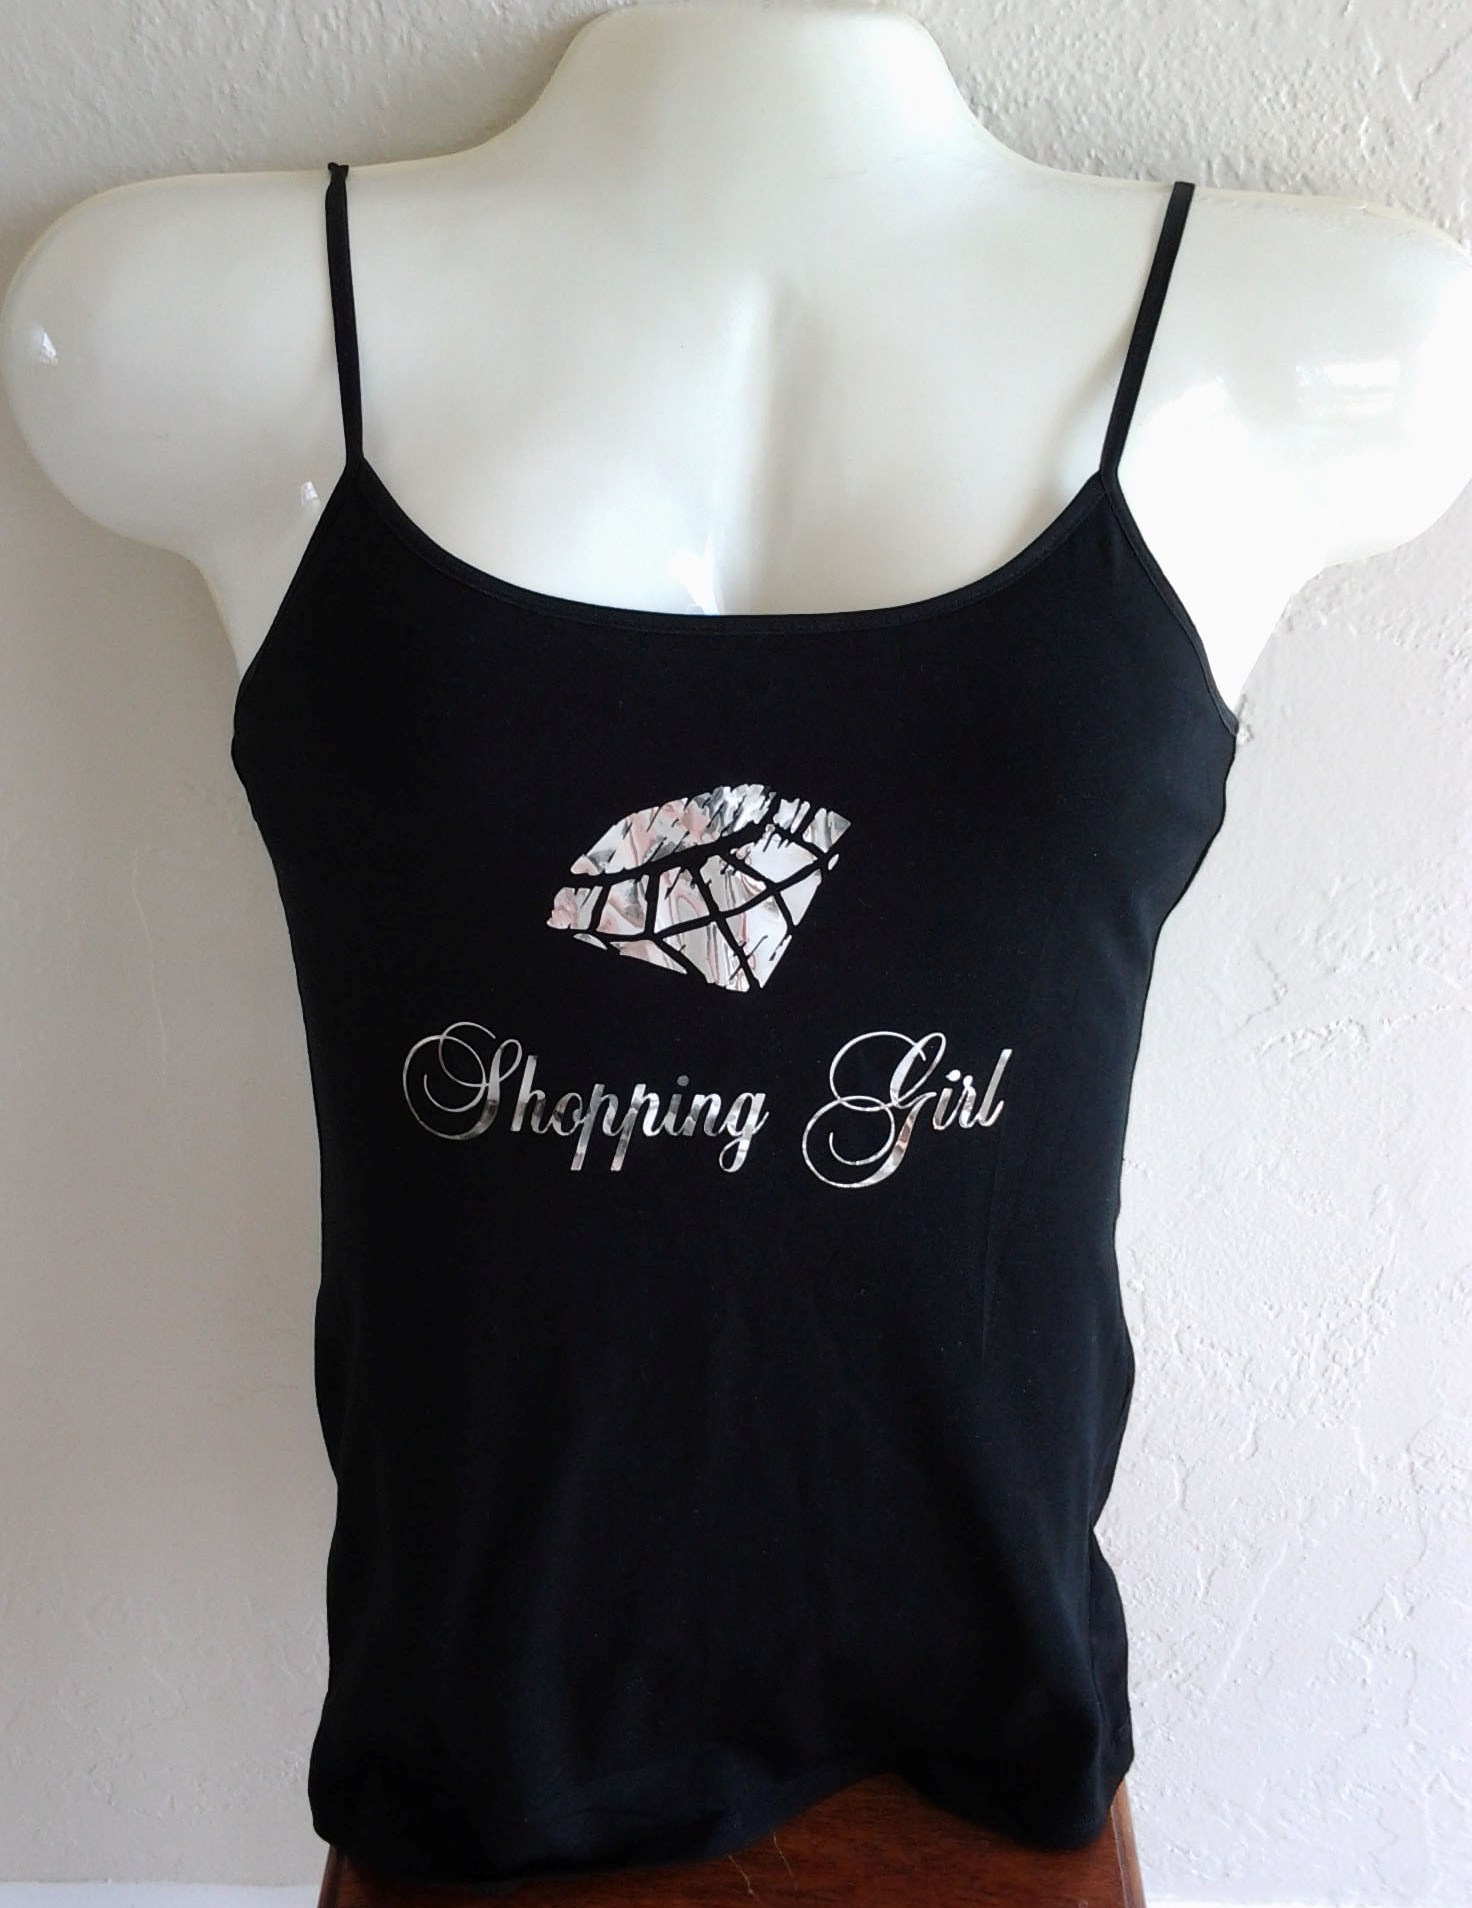 An über-popular ShoppingGirl.com T-shirt design featuring a metallic diamond pattern, created by Founder Tom in 2011.